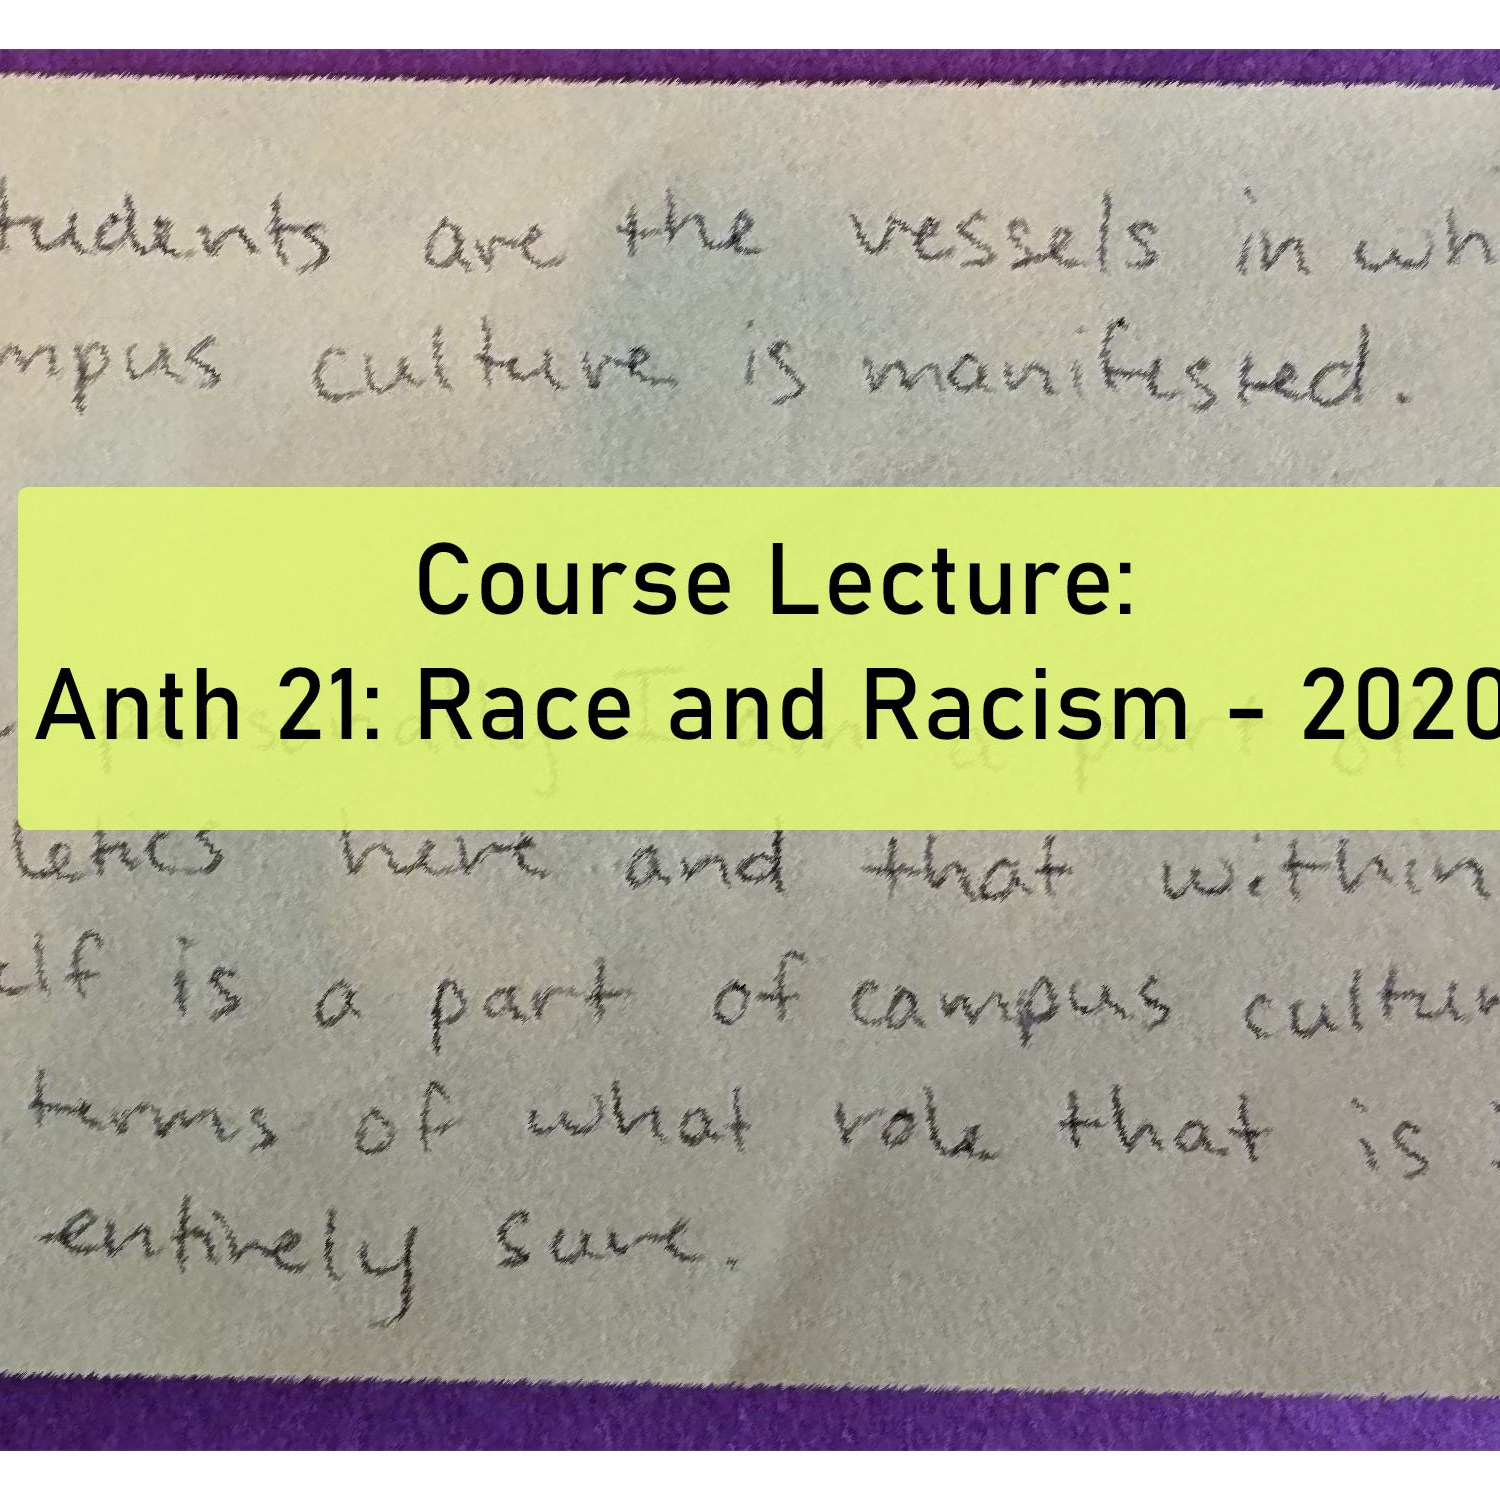 ANTH 21: Race and Racism - 2020